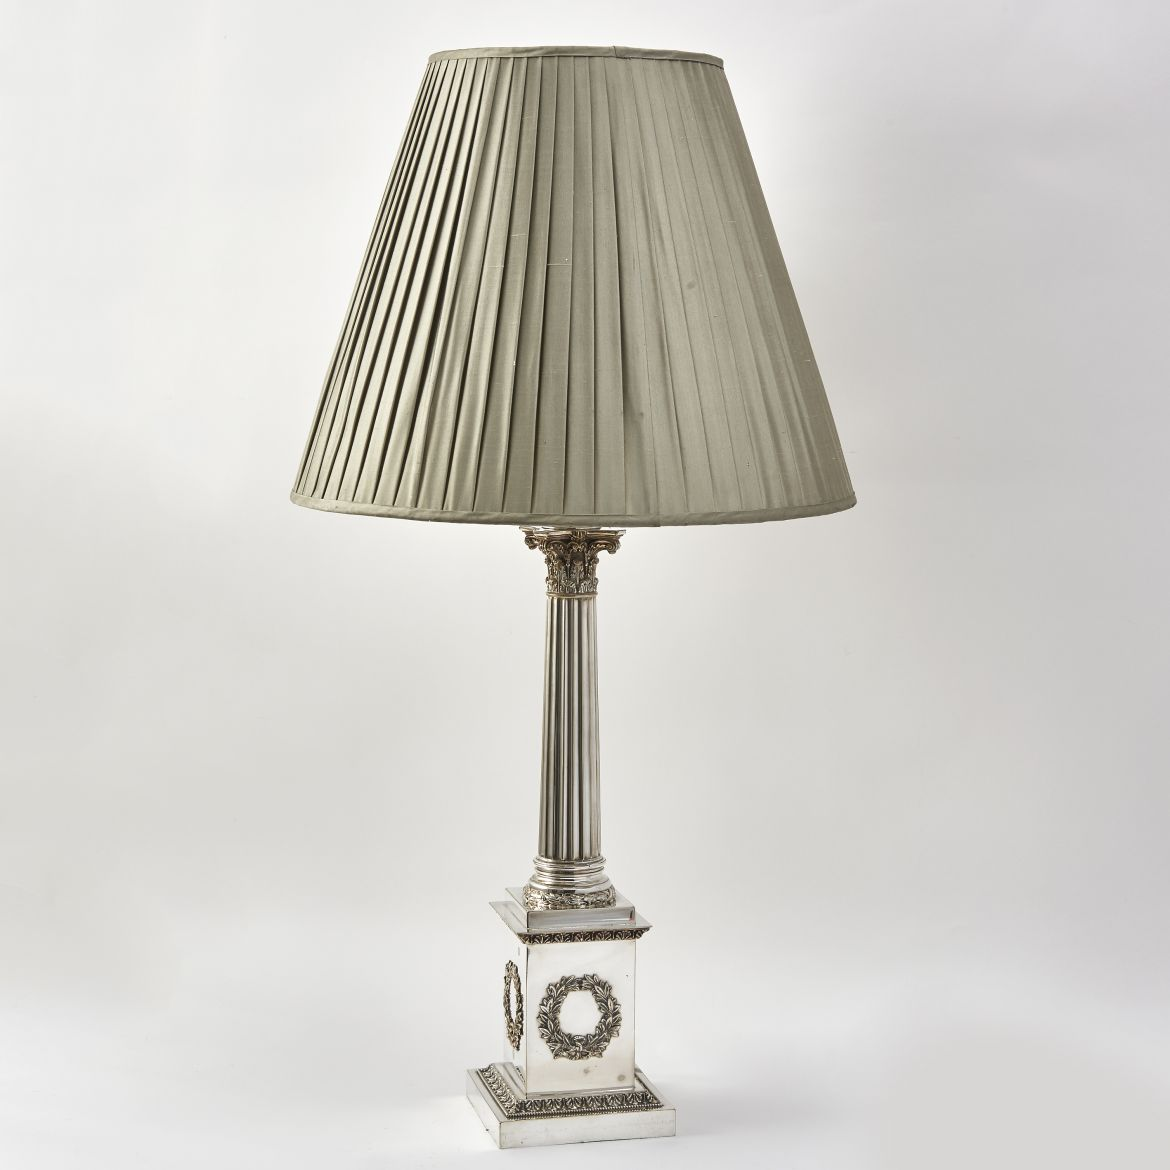 English Silver Plated Column Lamp